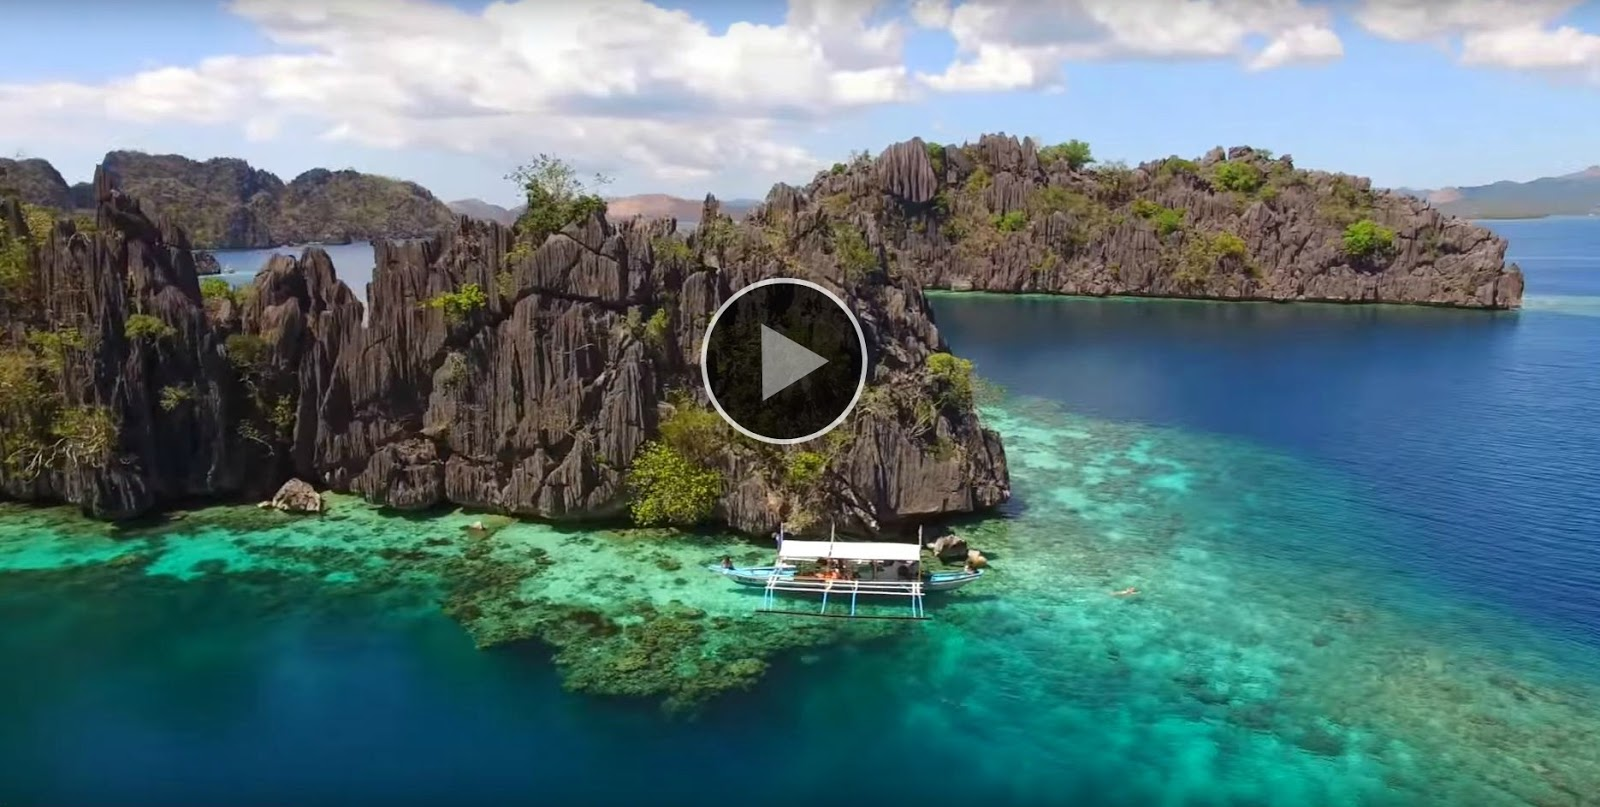 palawan, the philippines: the most beautiful island in the world